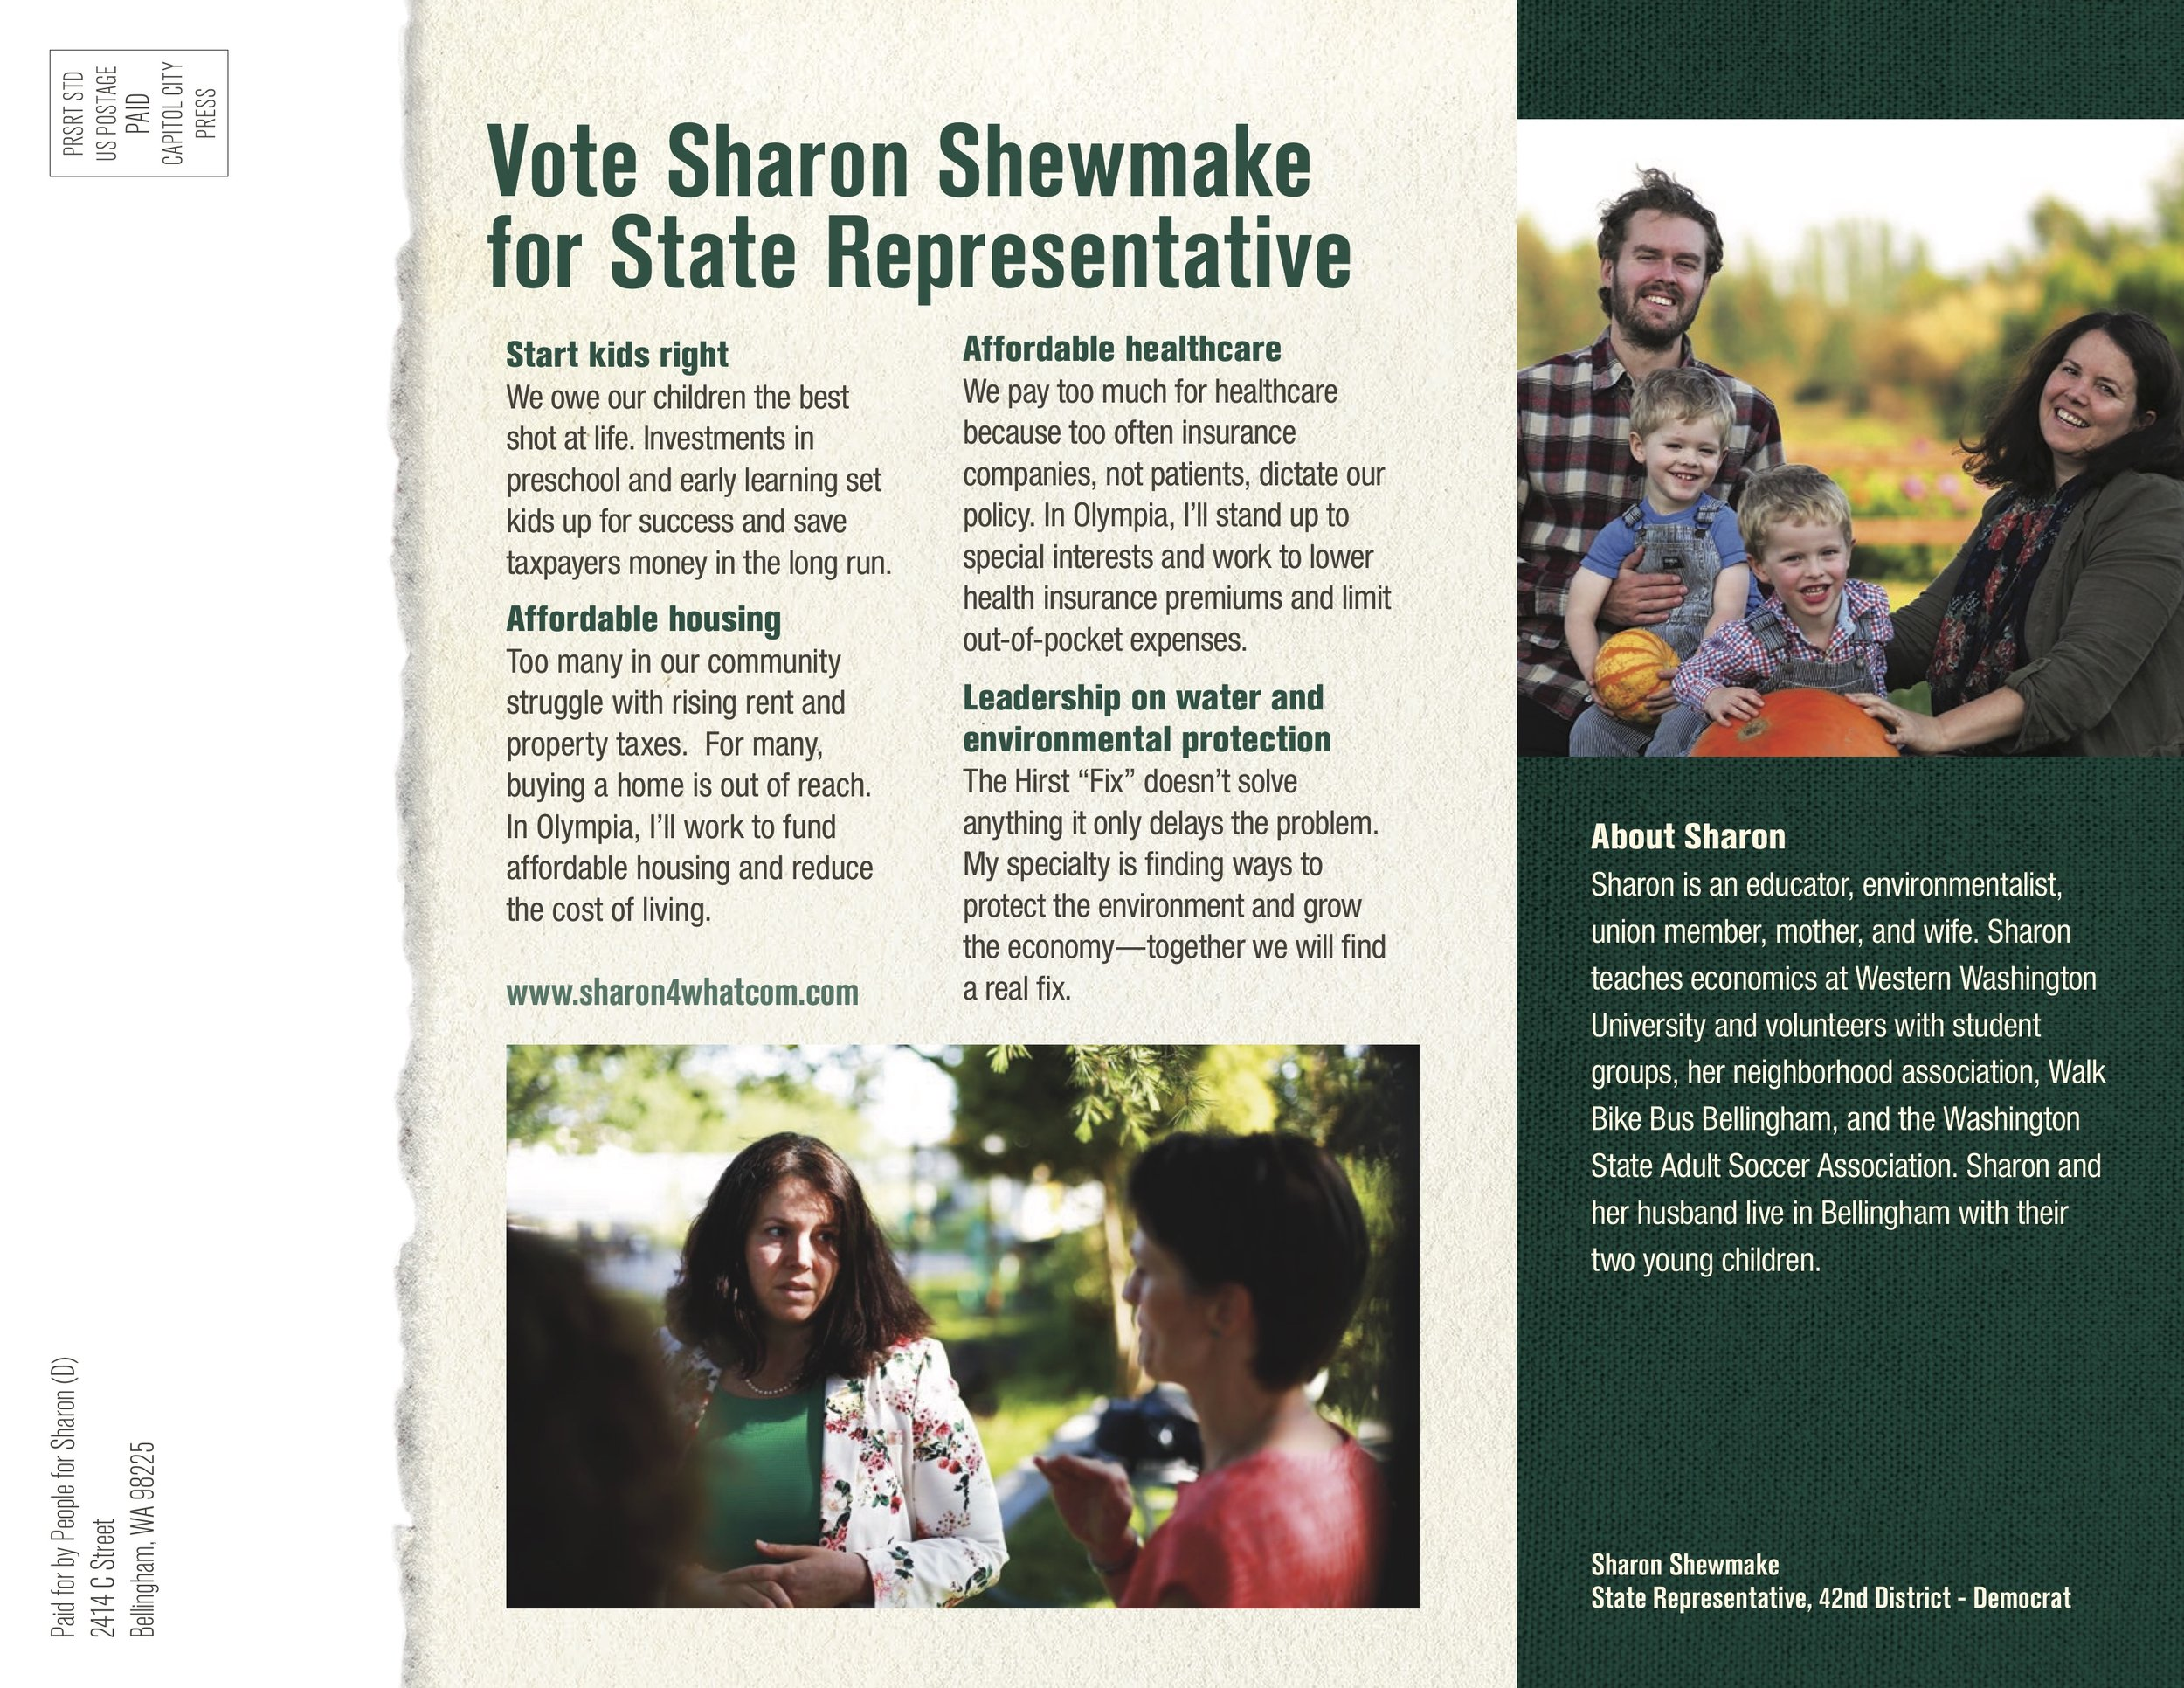 Introductory Political Mailer Side 2